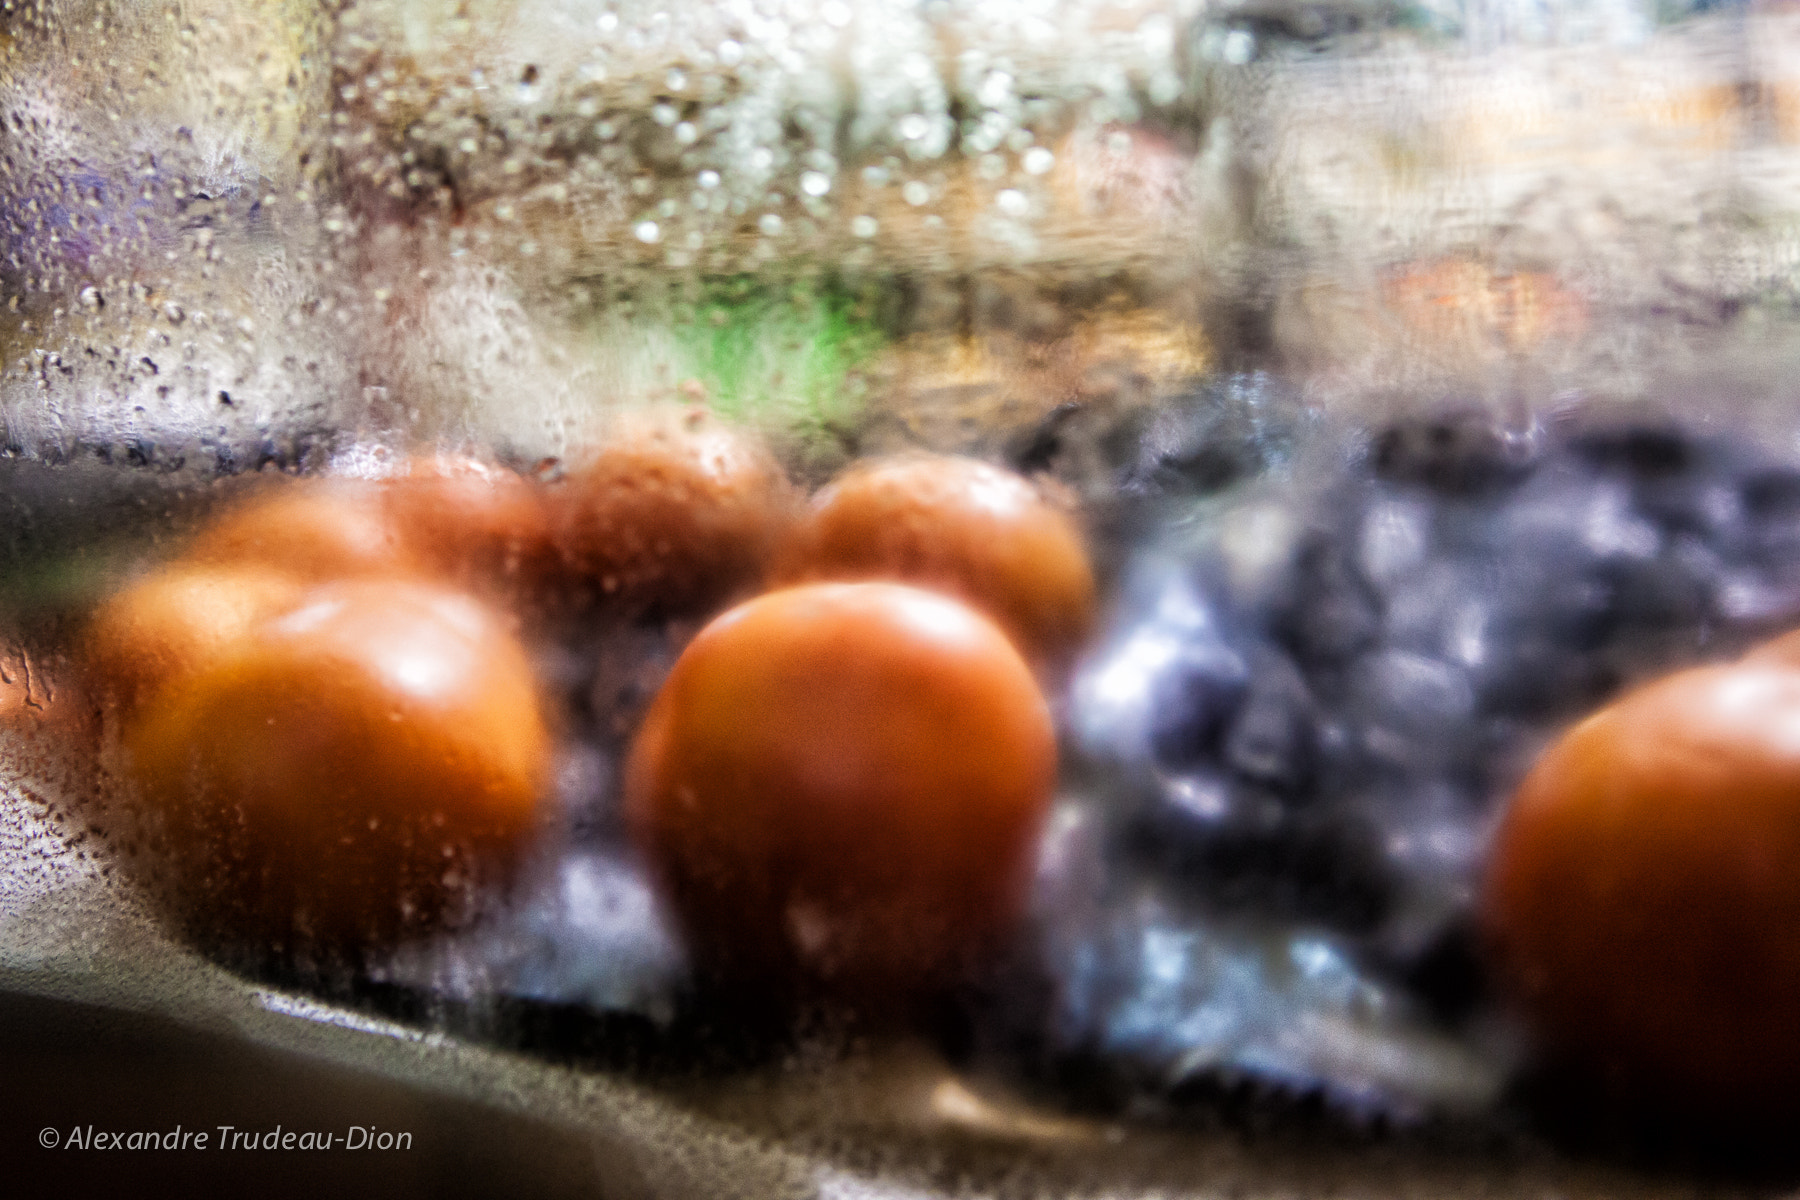 Photograph Tomatoes on display by Alexandre Trudeau-Dion on 500px